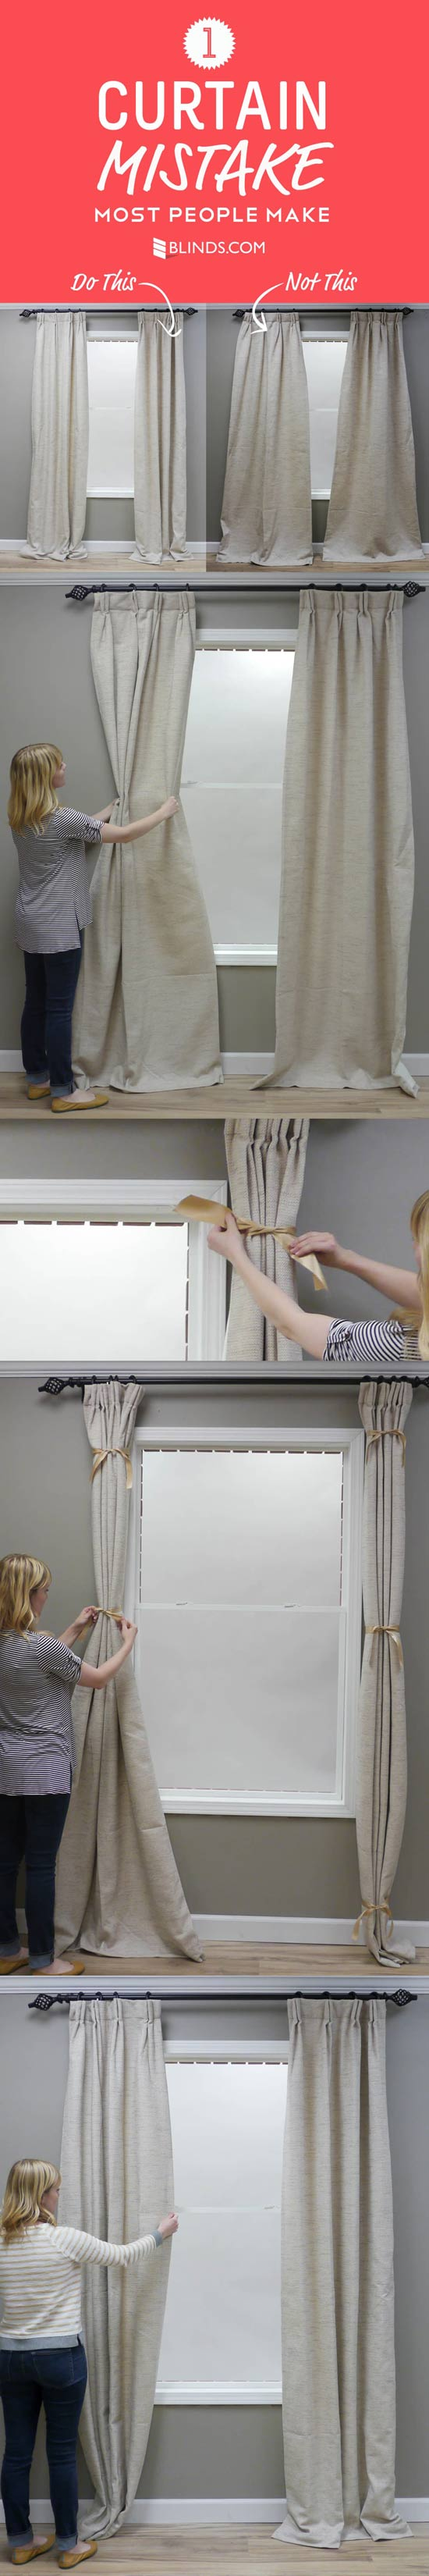 1 curtain mistake most people make